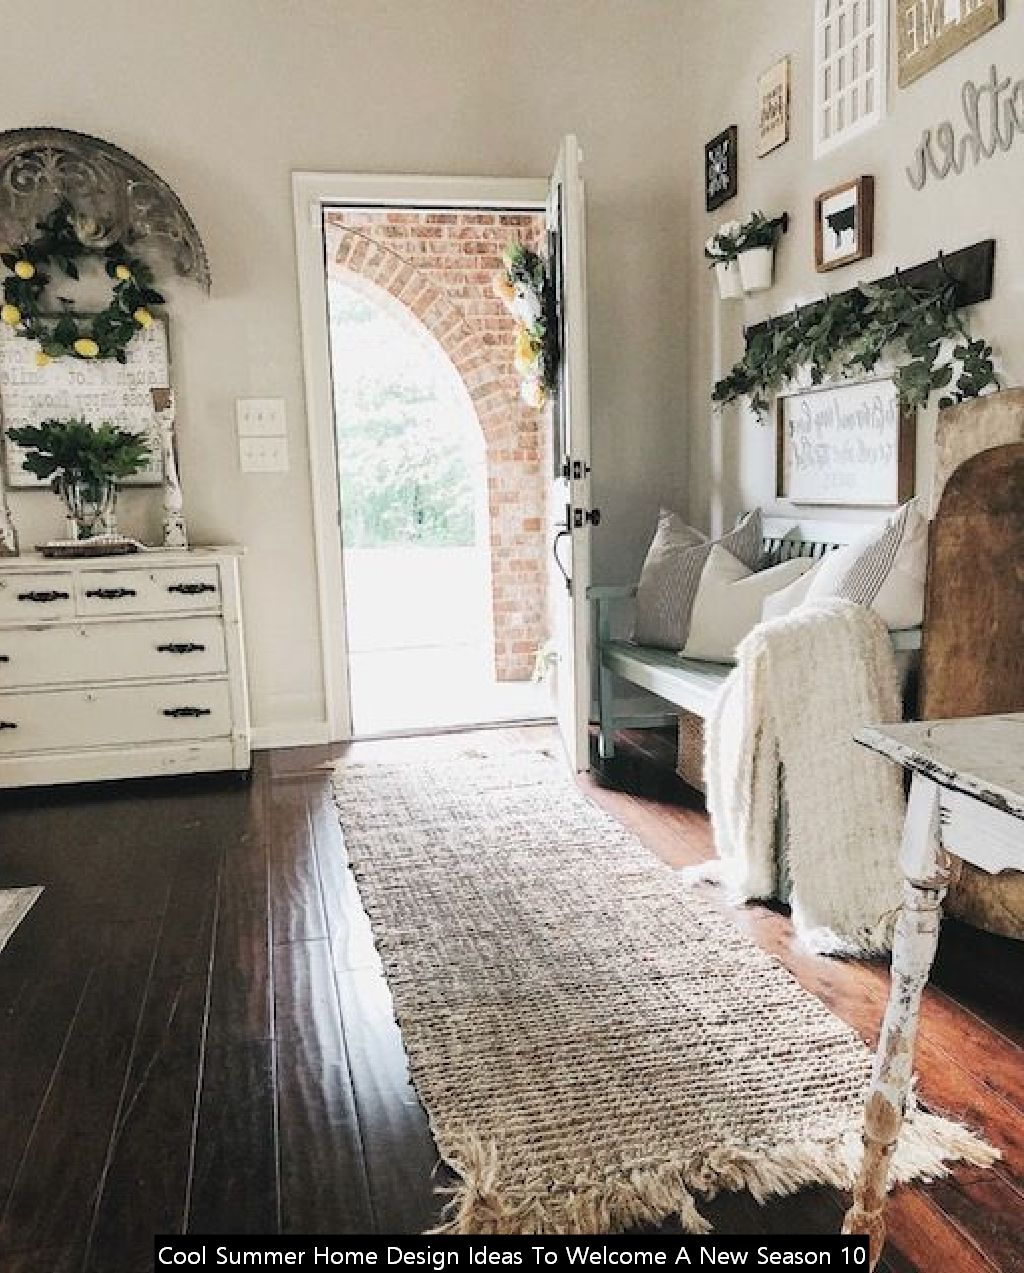 Cool Summer Home Design Ideas To Welcome A New Season 10